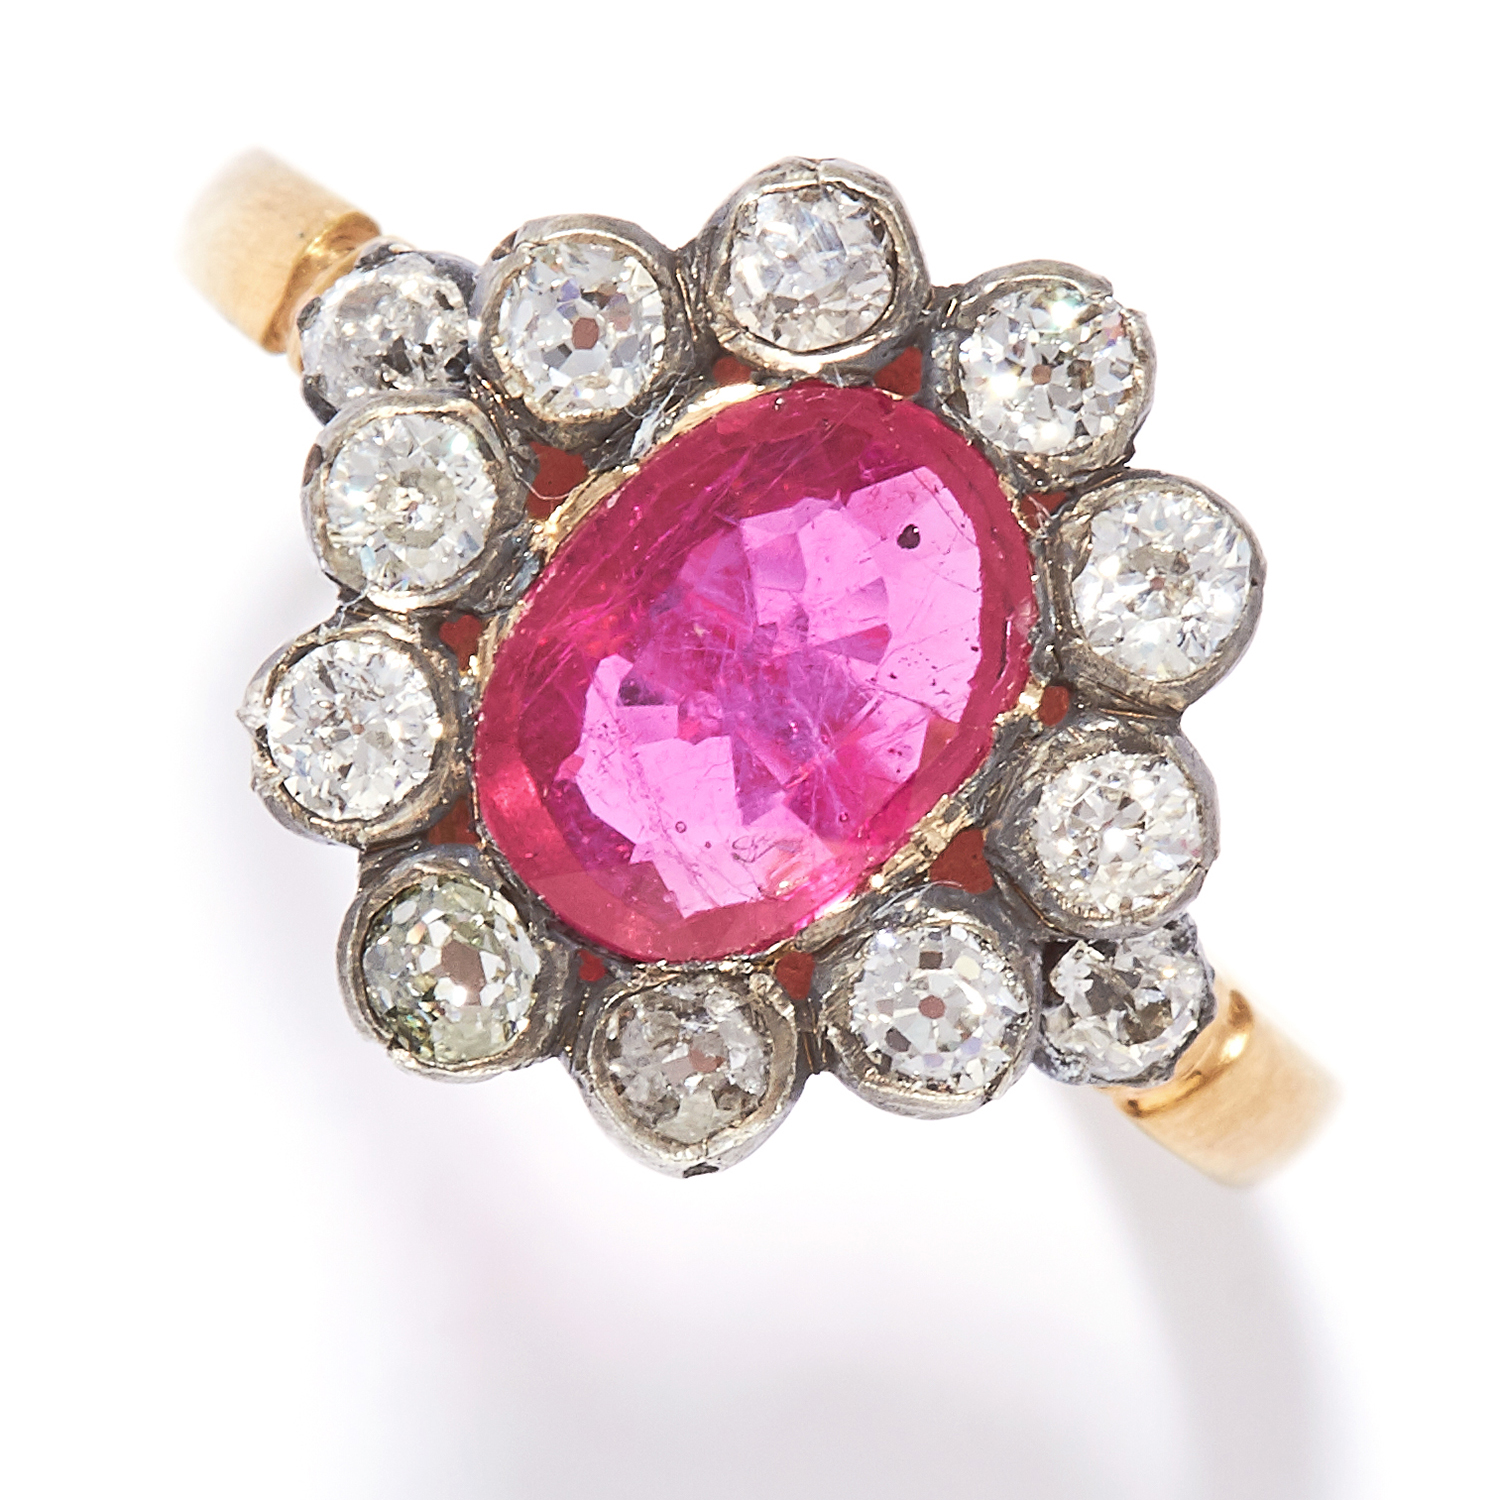 RUBY AND DIAMOND CLUSTER RING in yellow gold, set with an oval cut ruby in a cluster of round cut